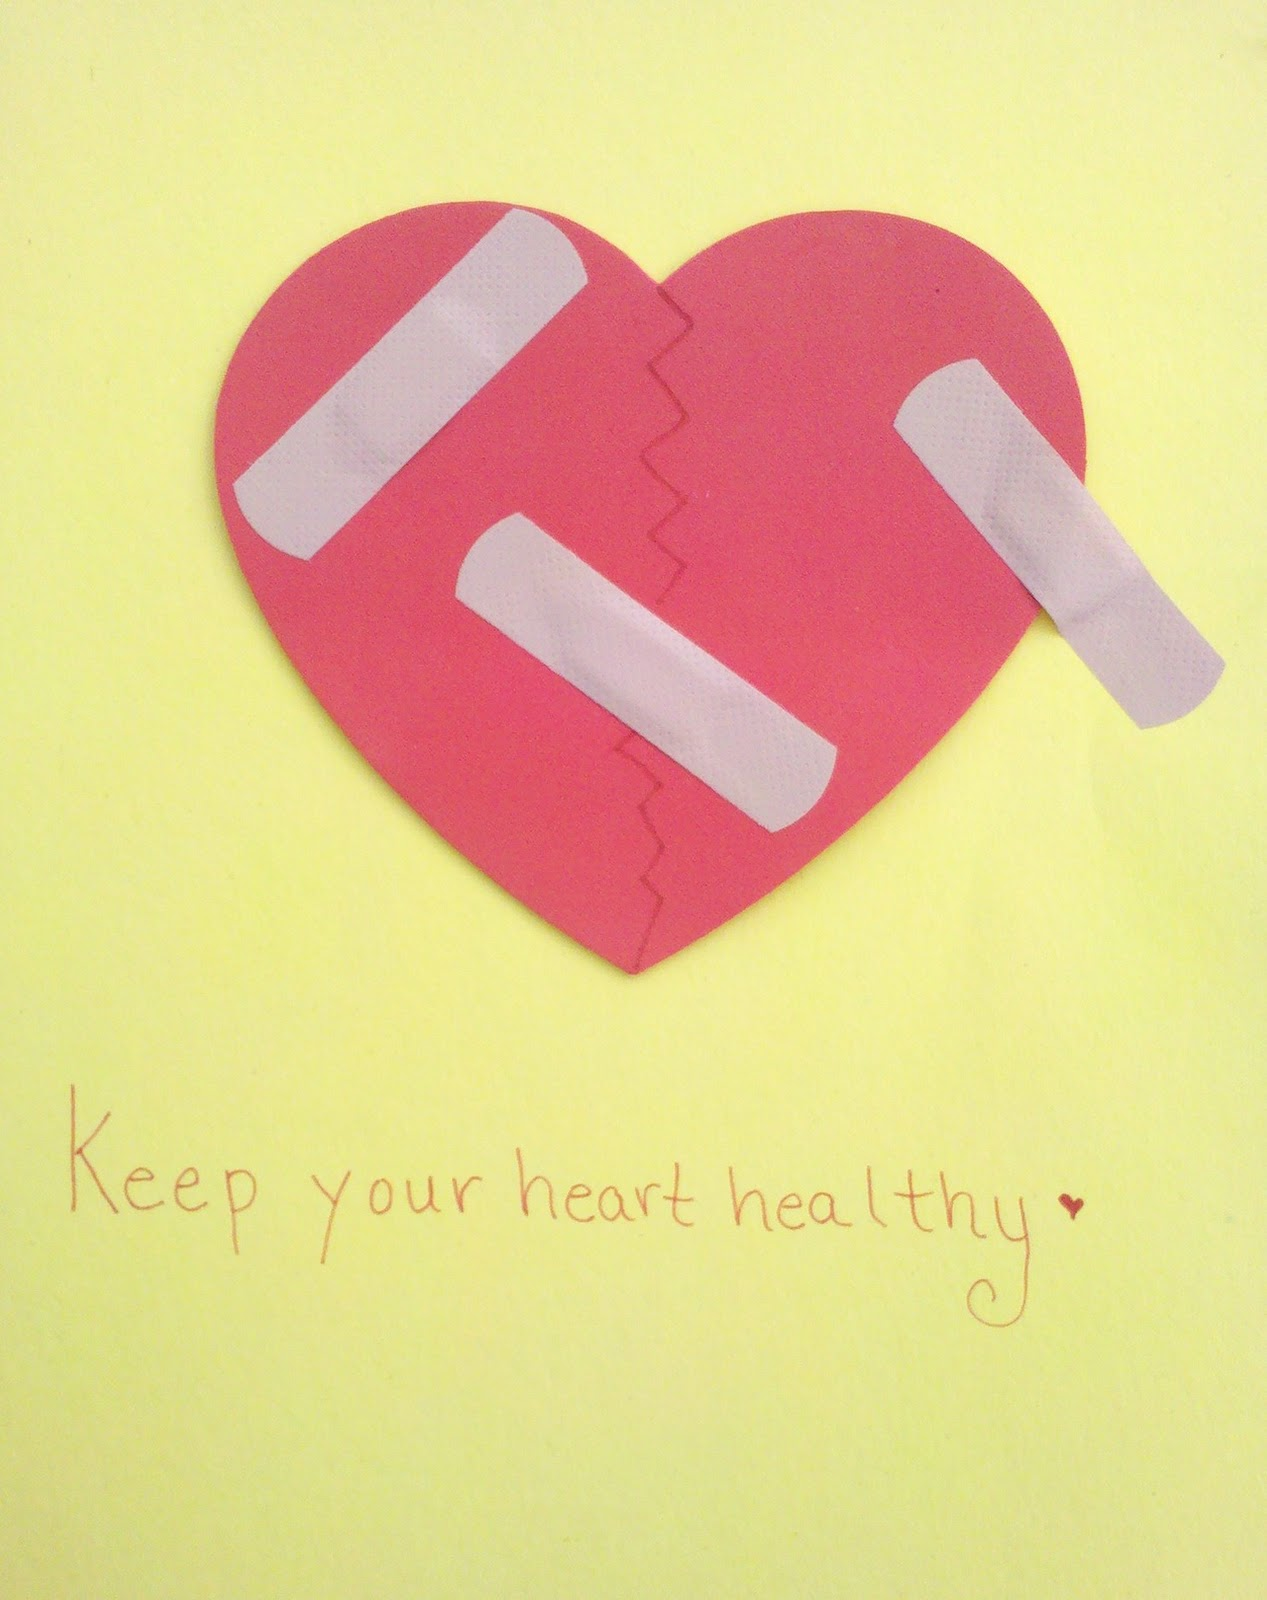 Be Brave Keep Going Heart Health Teaching Kids About